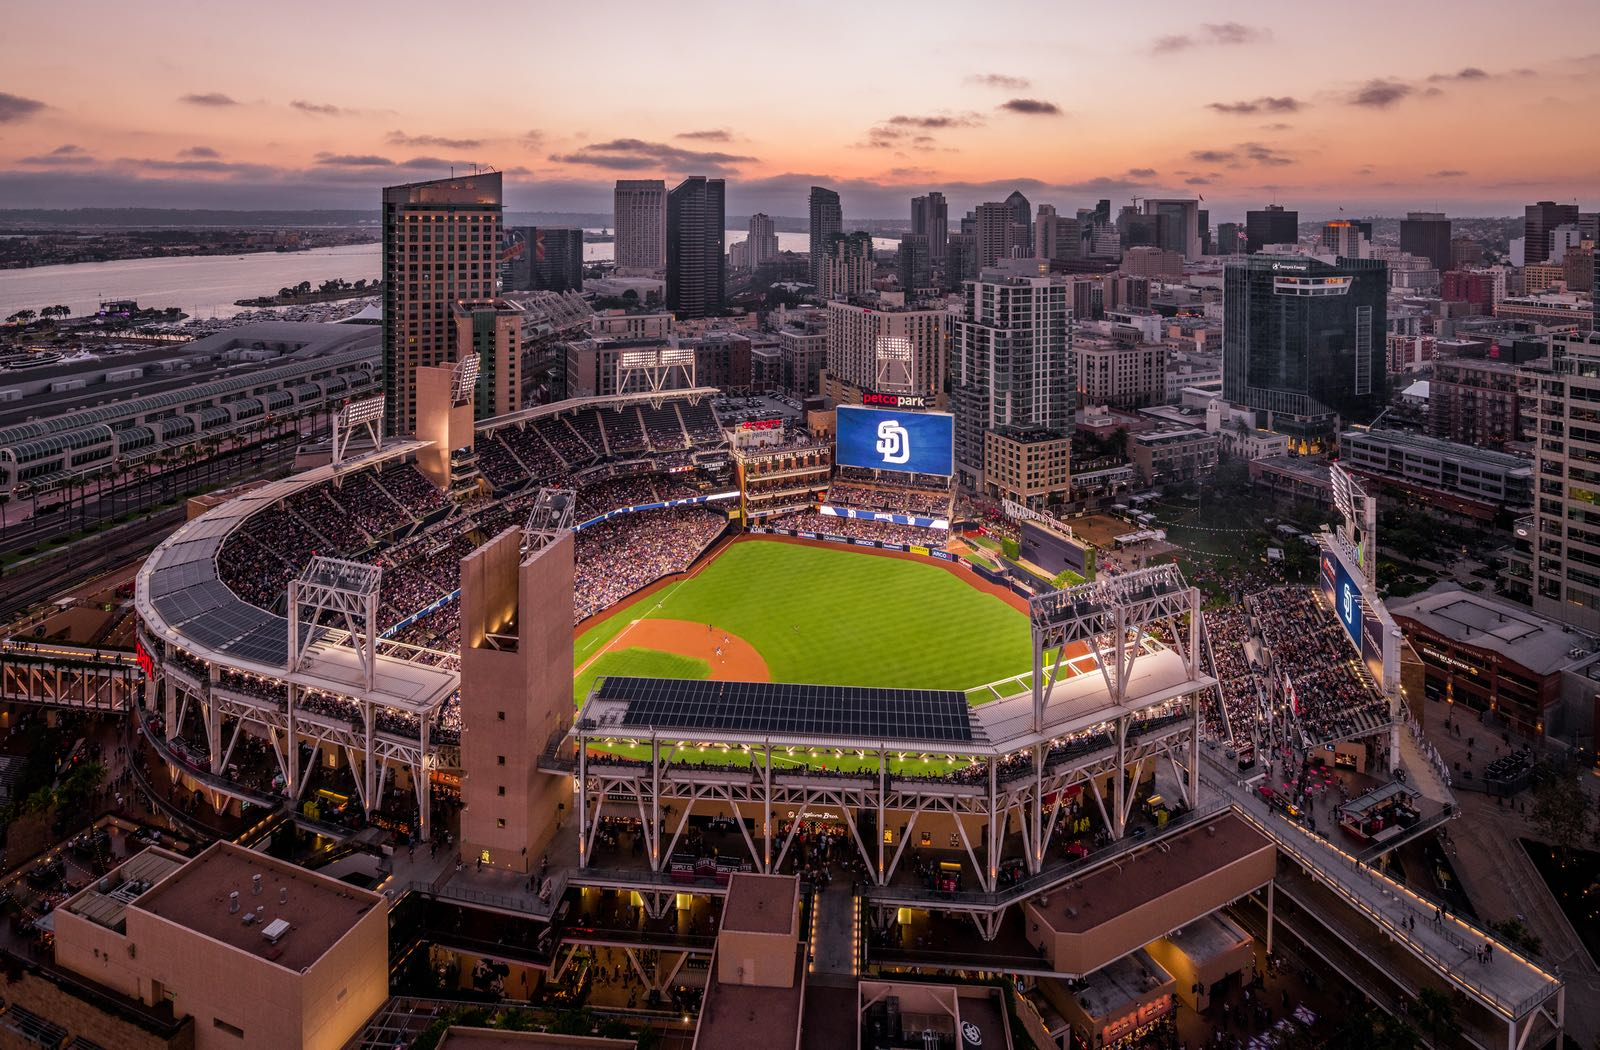 Dusk at Petco Park - Top Things to Do in San Diego